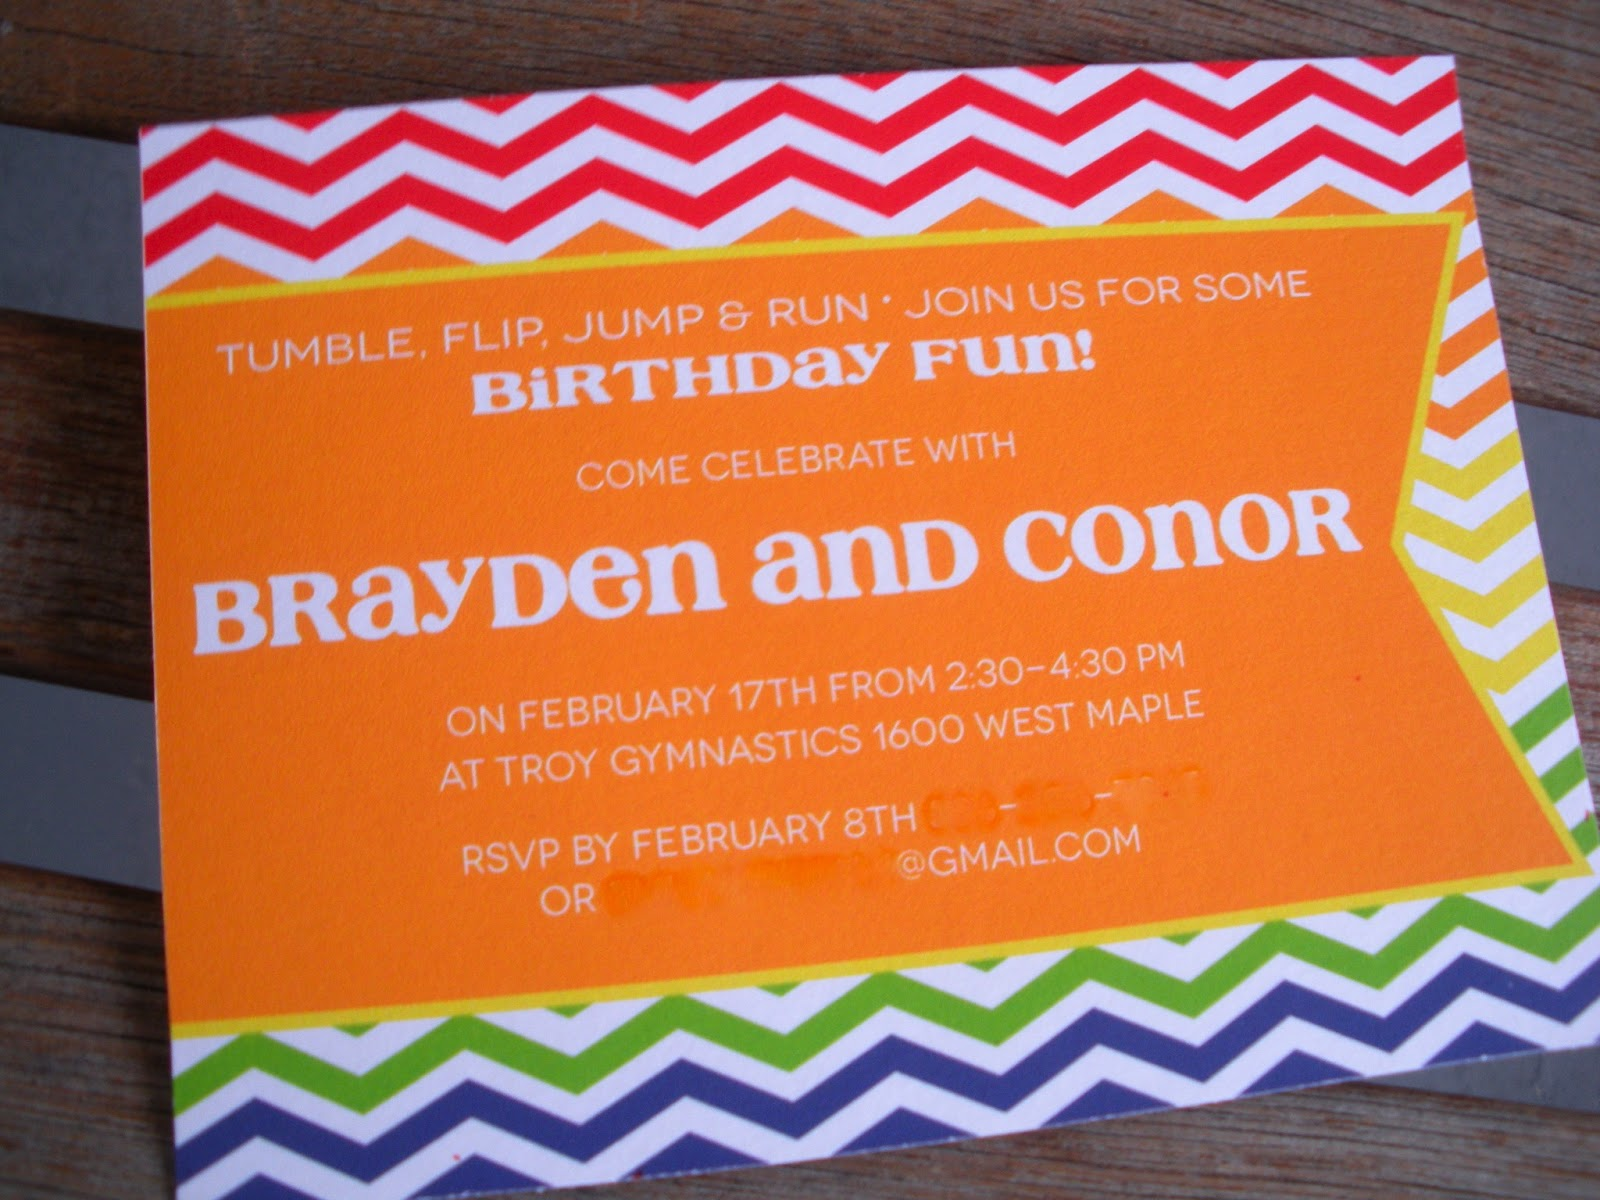 Vivian elle invitations brayden and conors birthday party invites brayden and conors birthday party invites stopboris Gallery